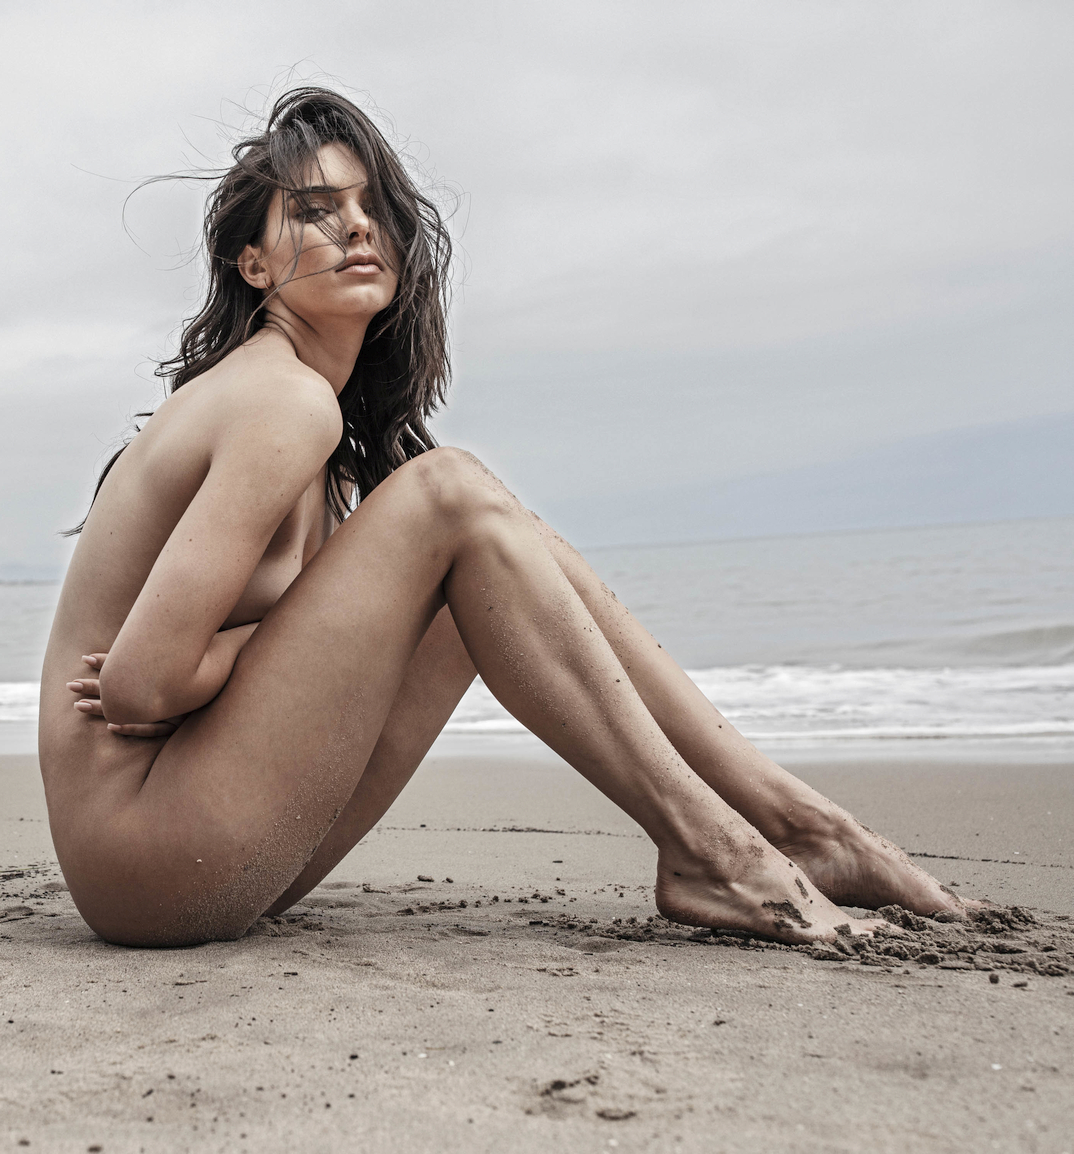 Kendall Jenner posing nude